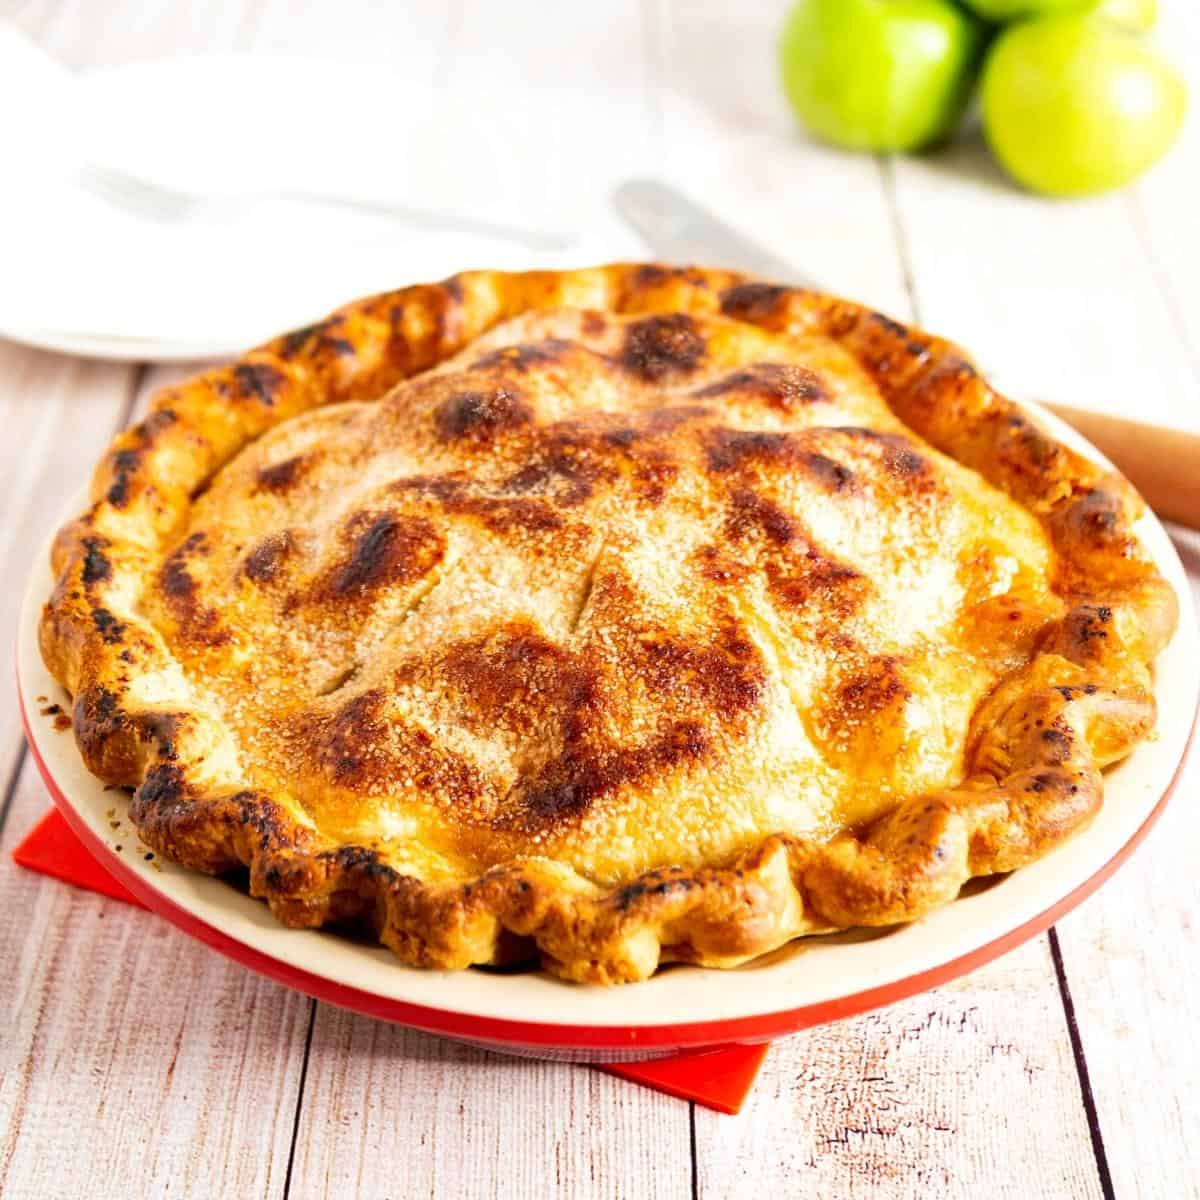 A baked double crust apple pie.